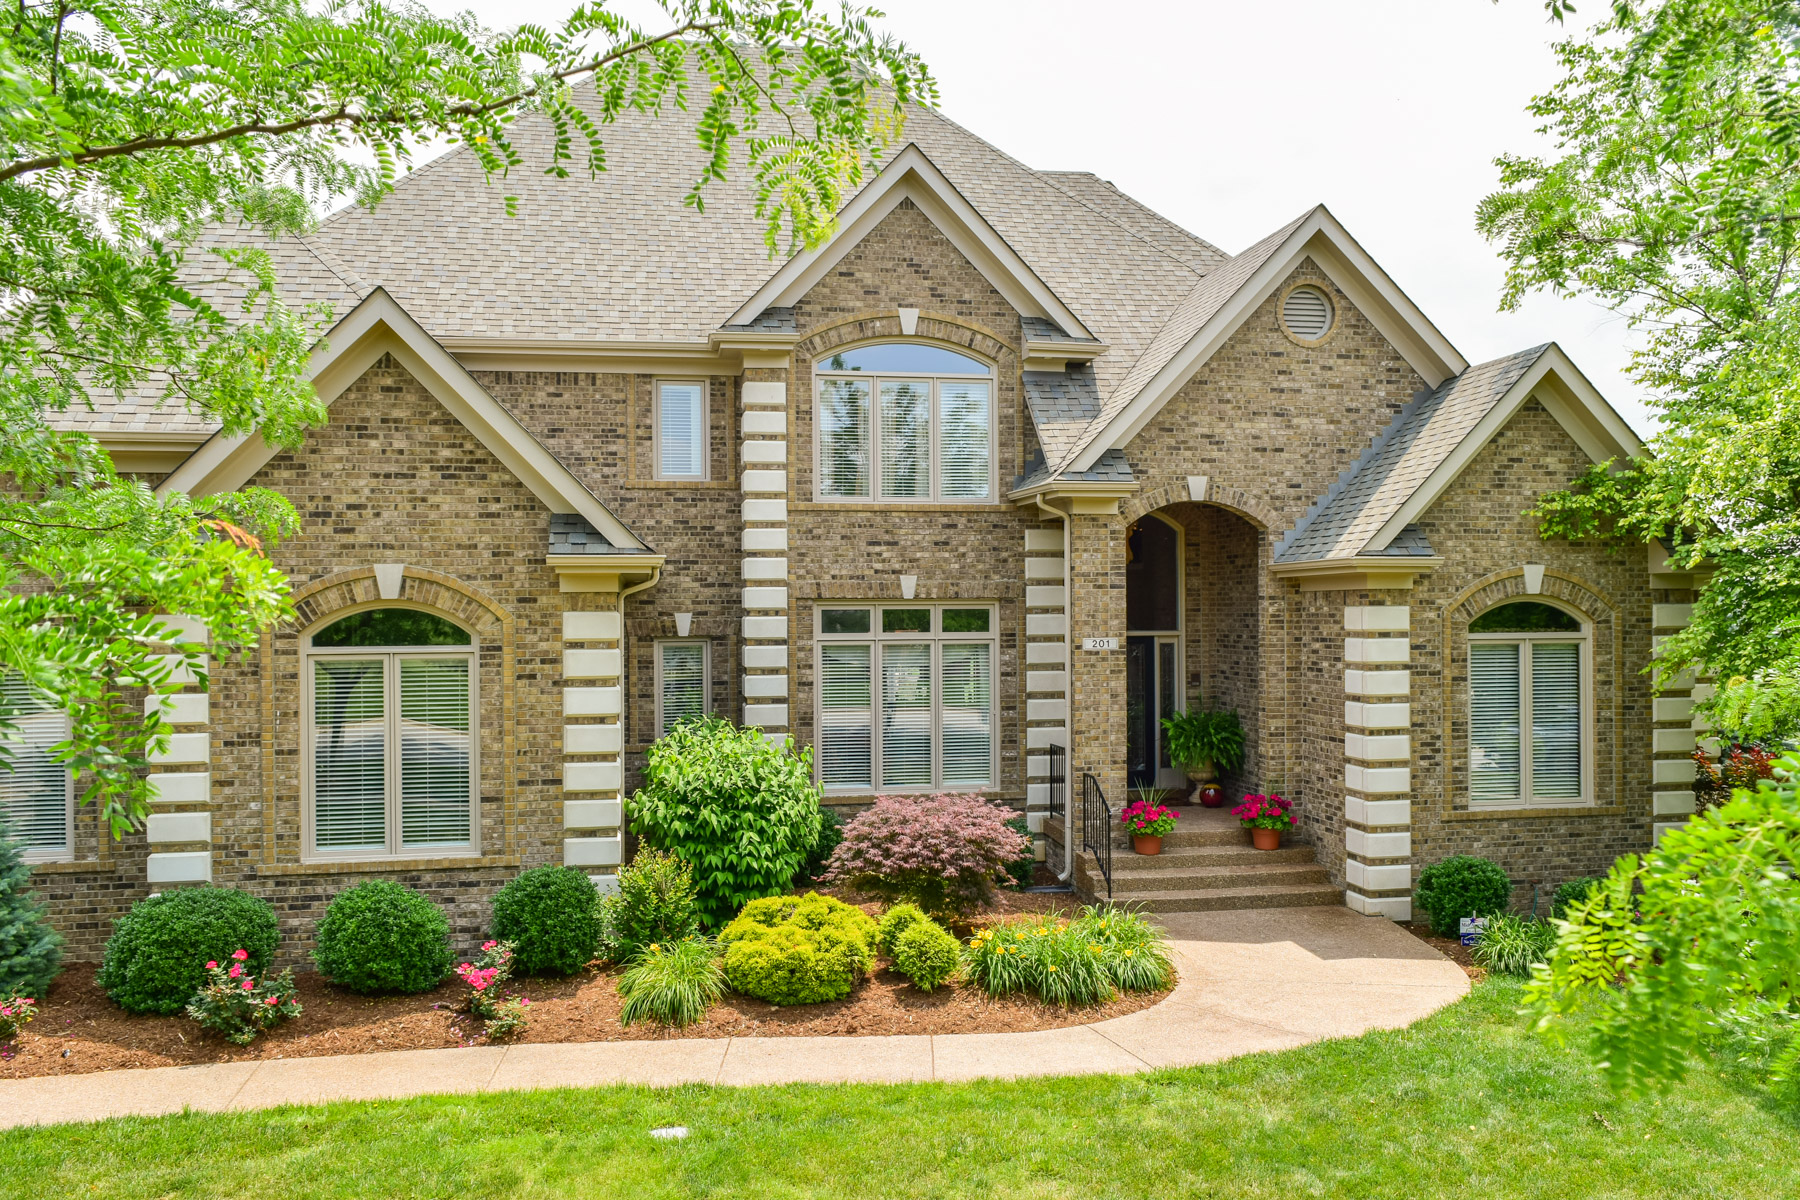 Single Family Home for Sale at 201 Locust Creek Blvd Louisville, Kentucky 40245 United States